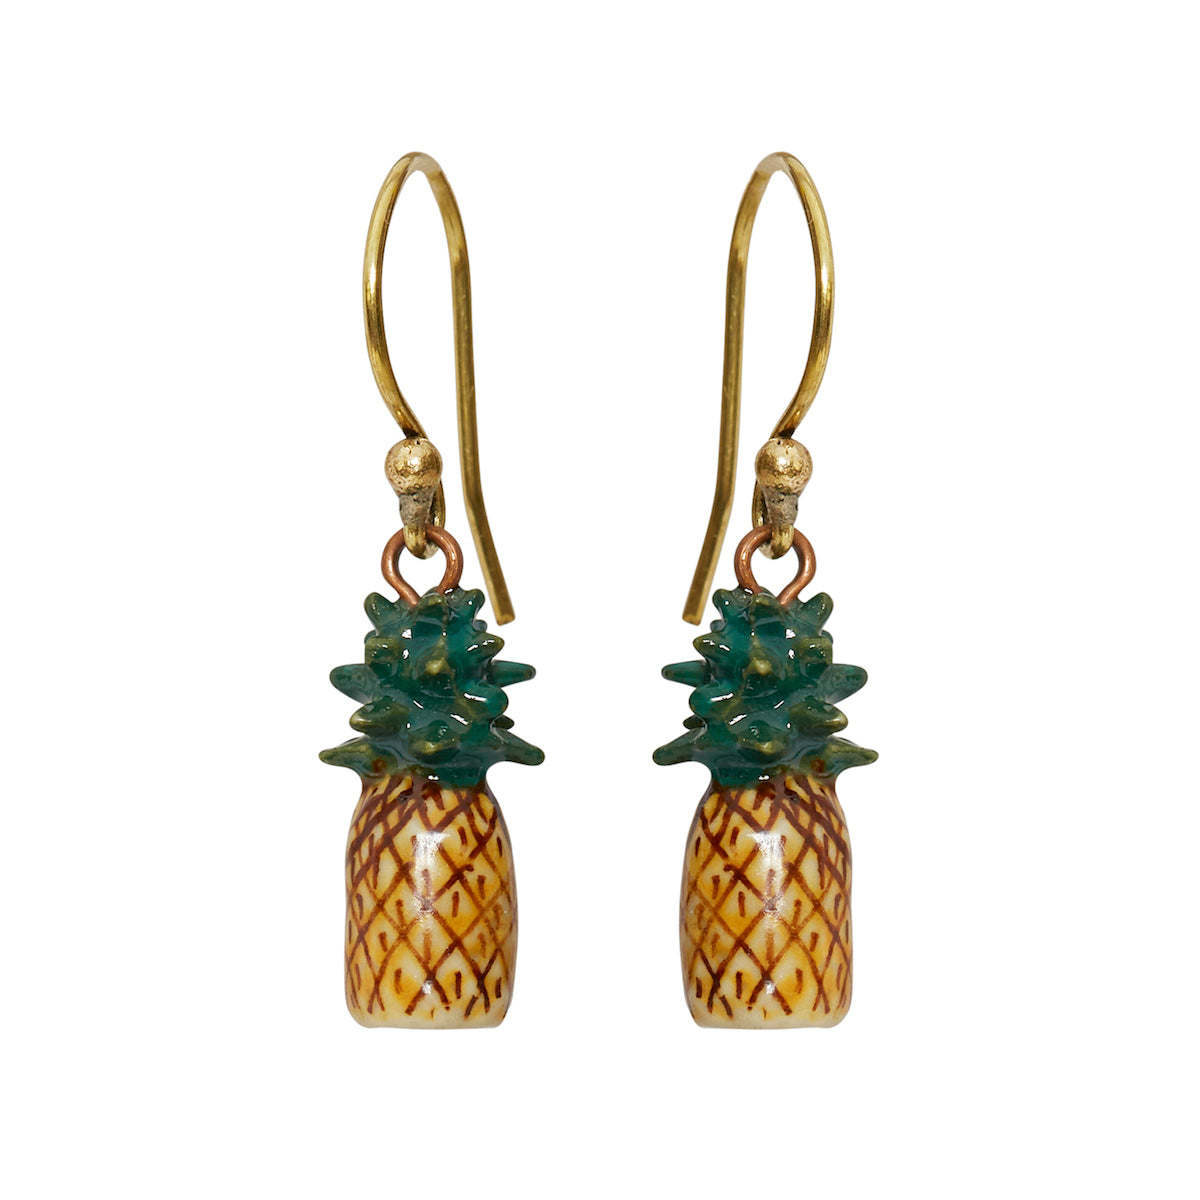 Tiny Pineapple Hook Earrings